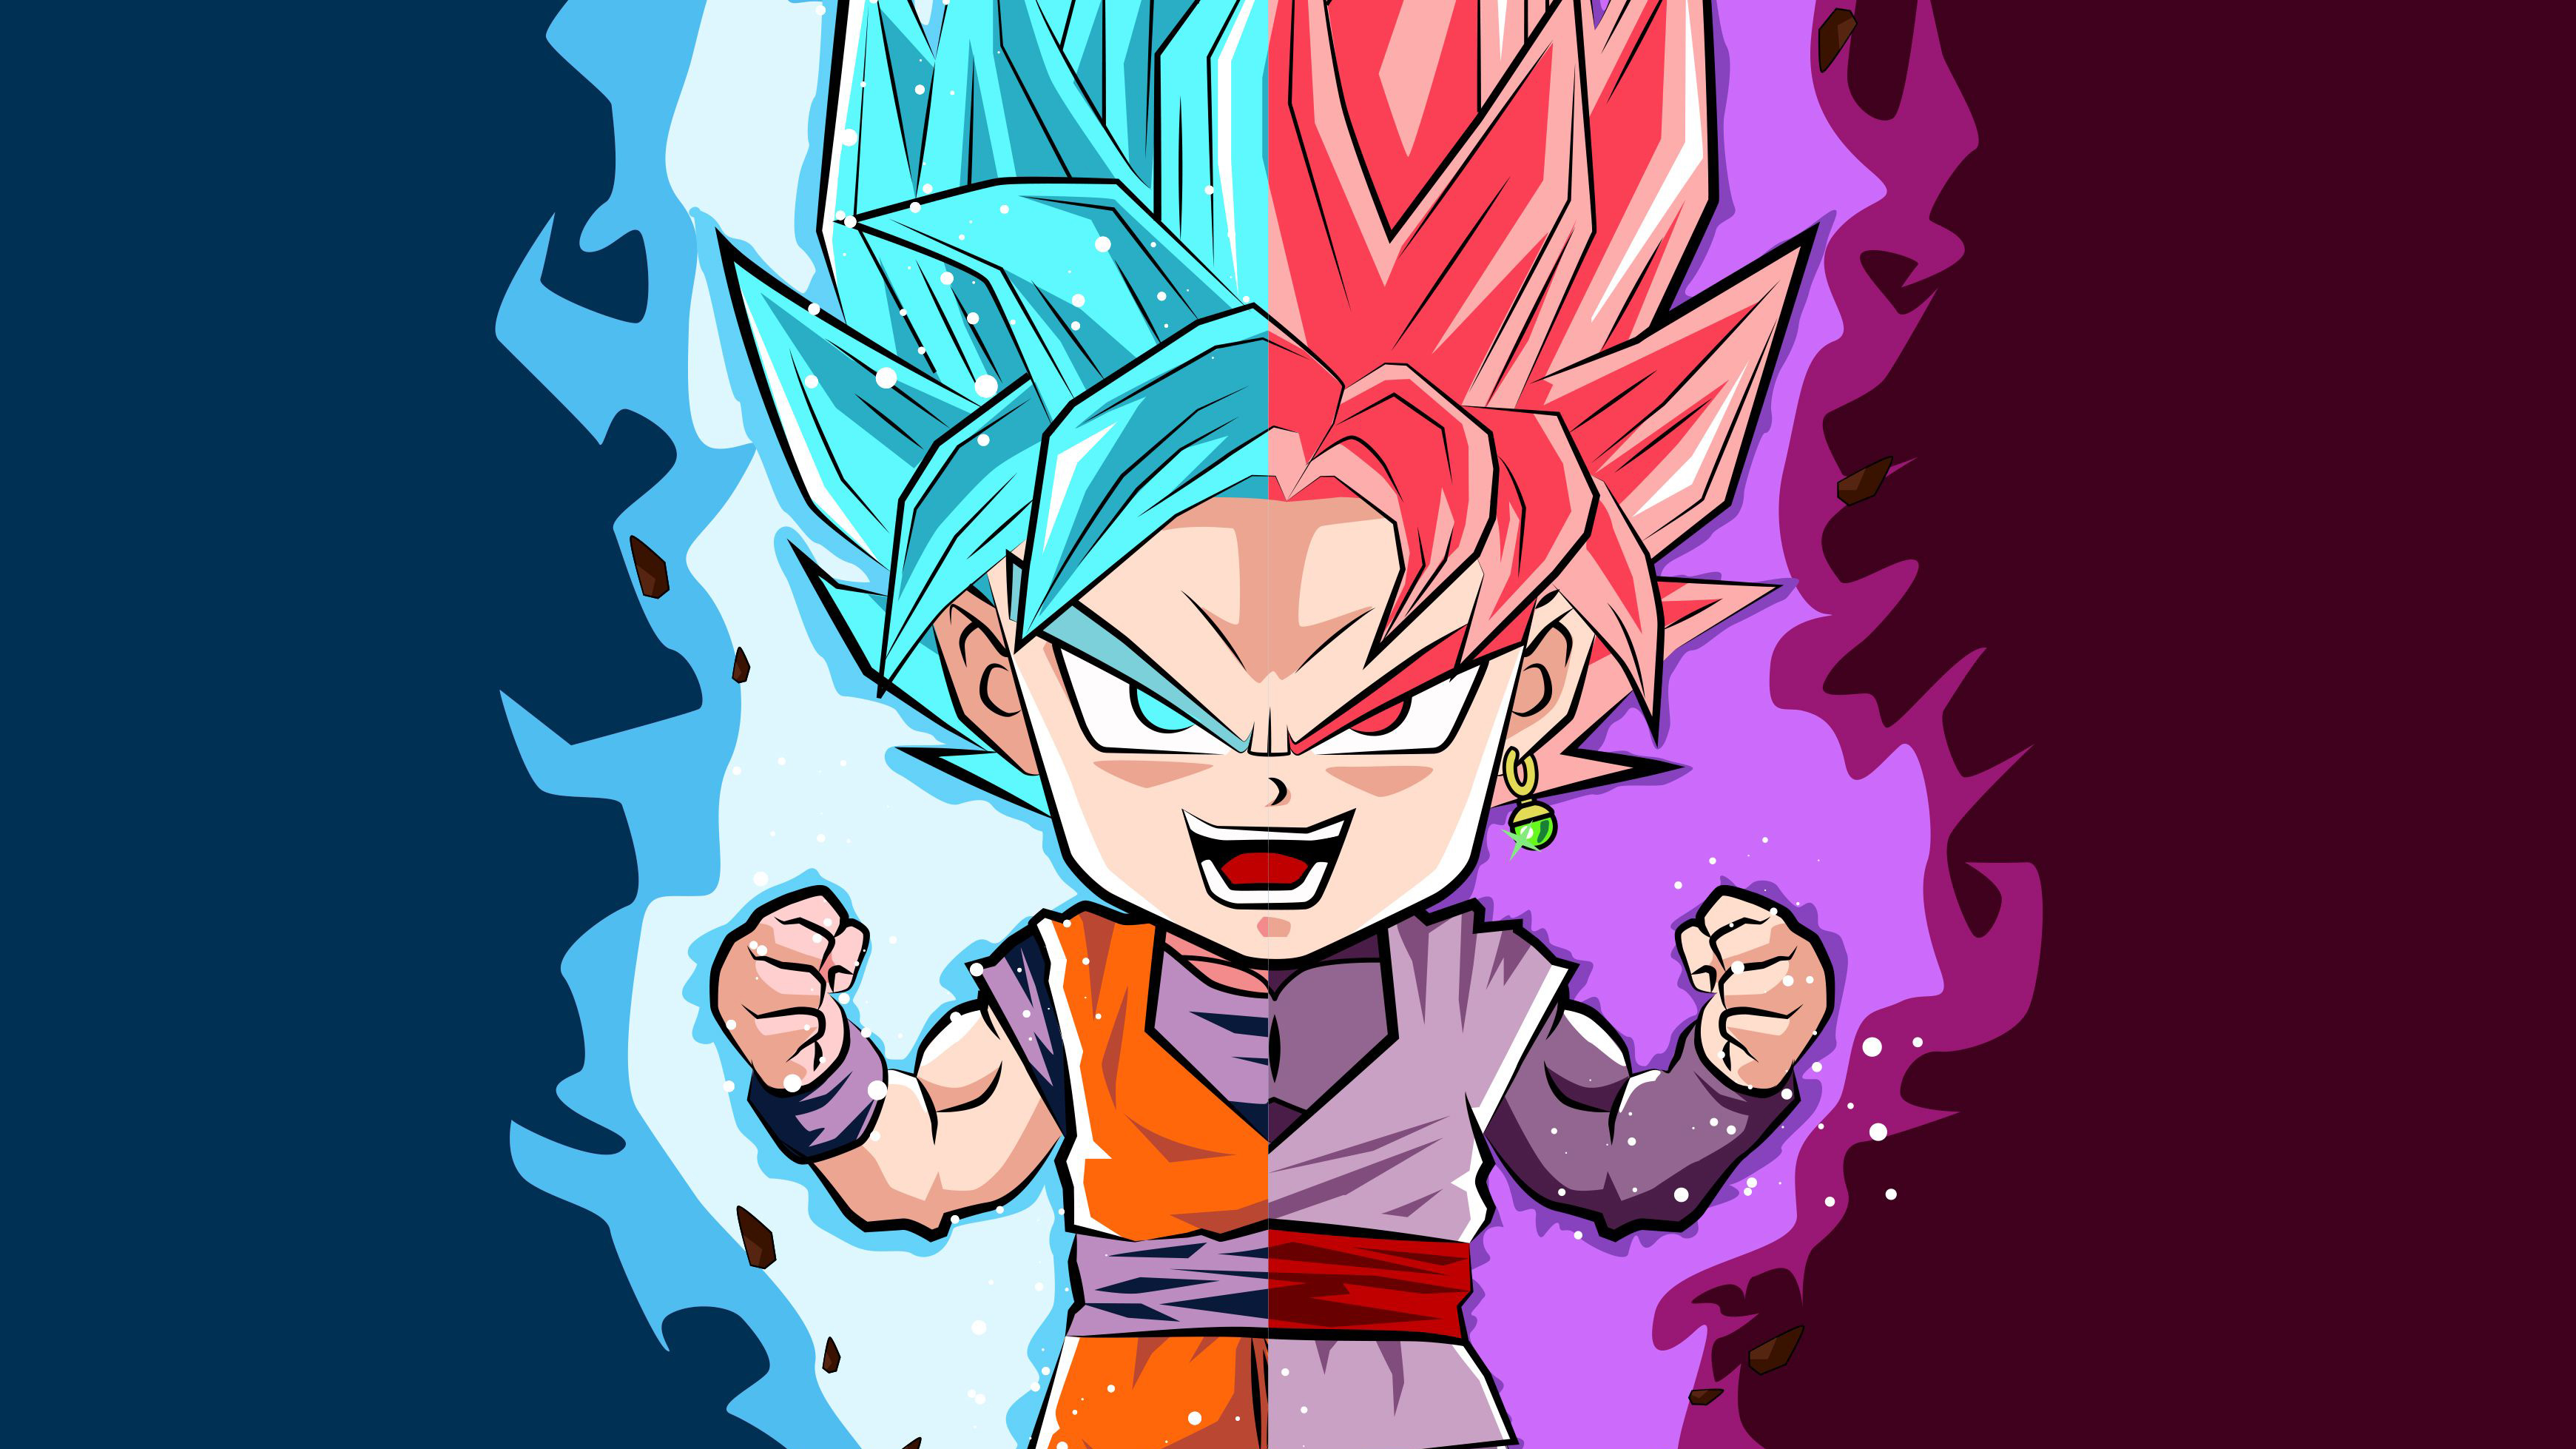 Dragon Ball Super Art 4k, HD Games, 4k Wallpapers, Images, Backgrounds, Photos and Pictures